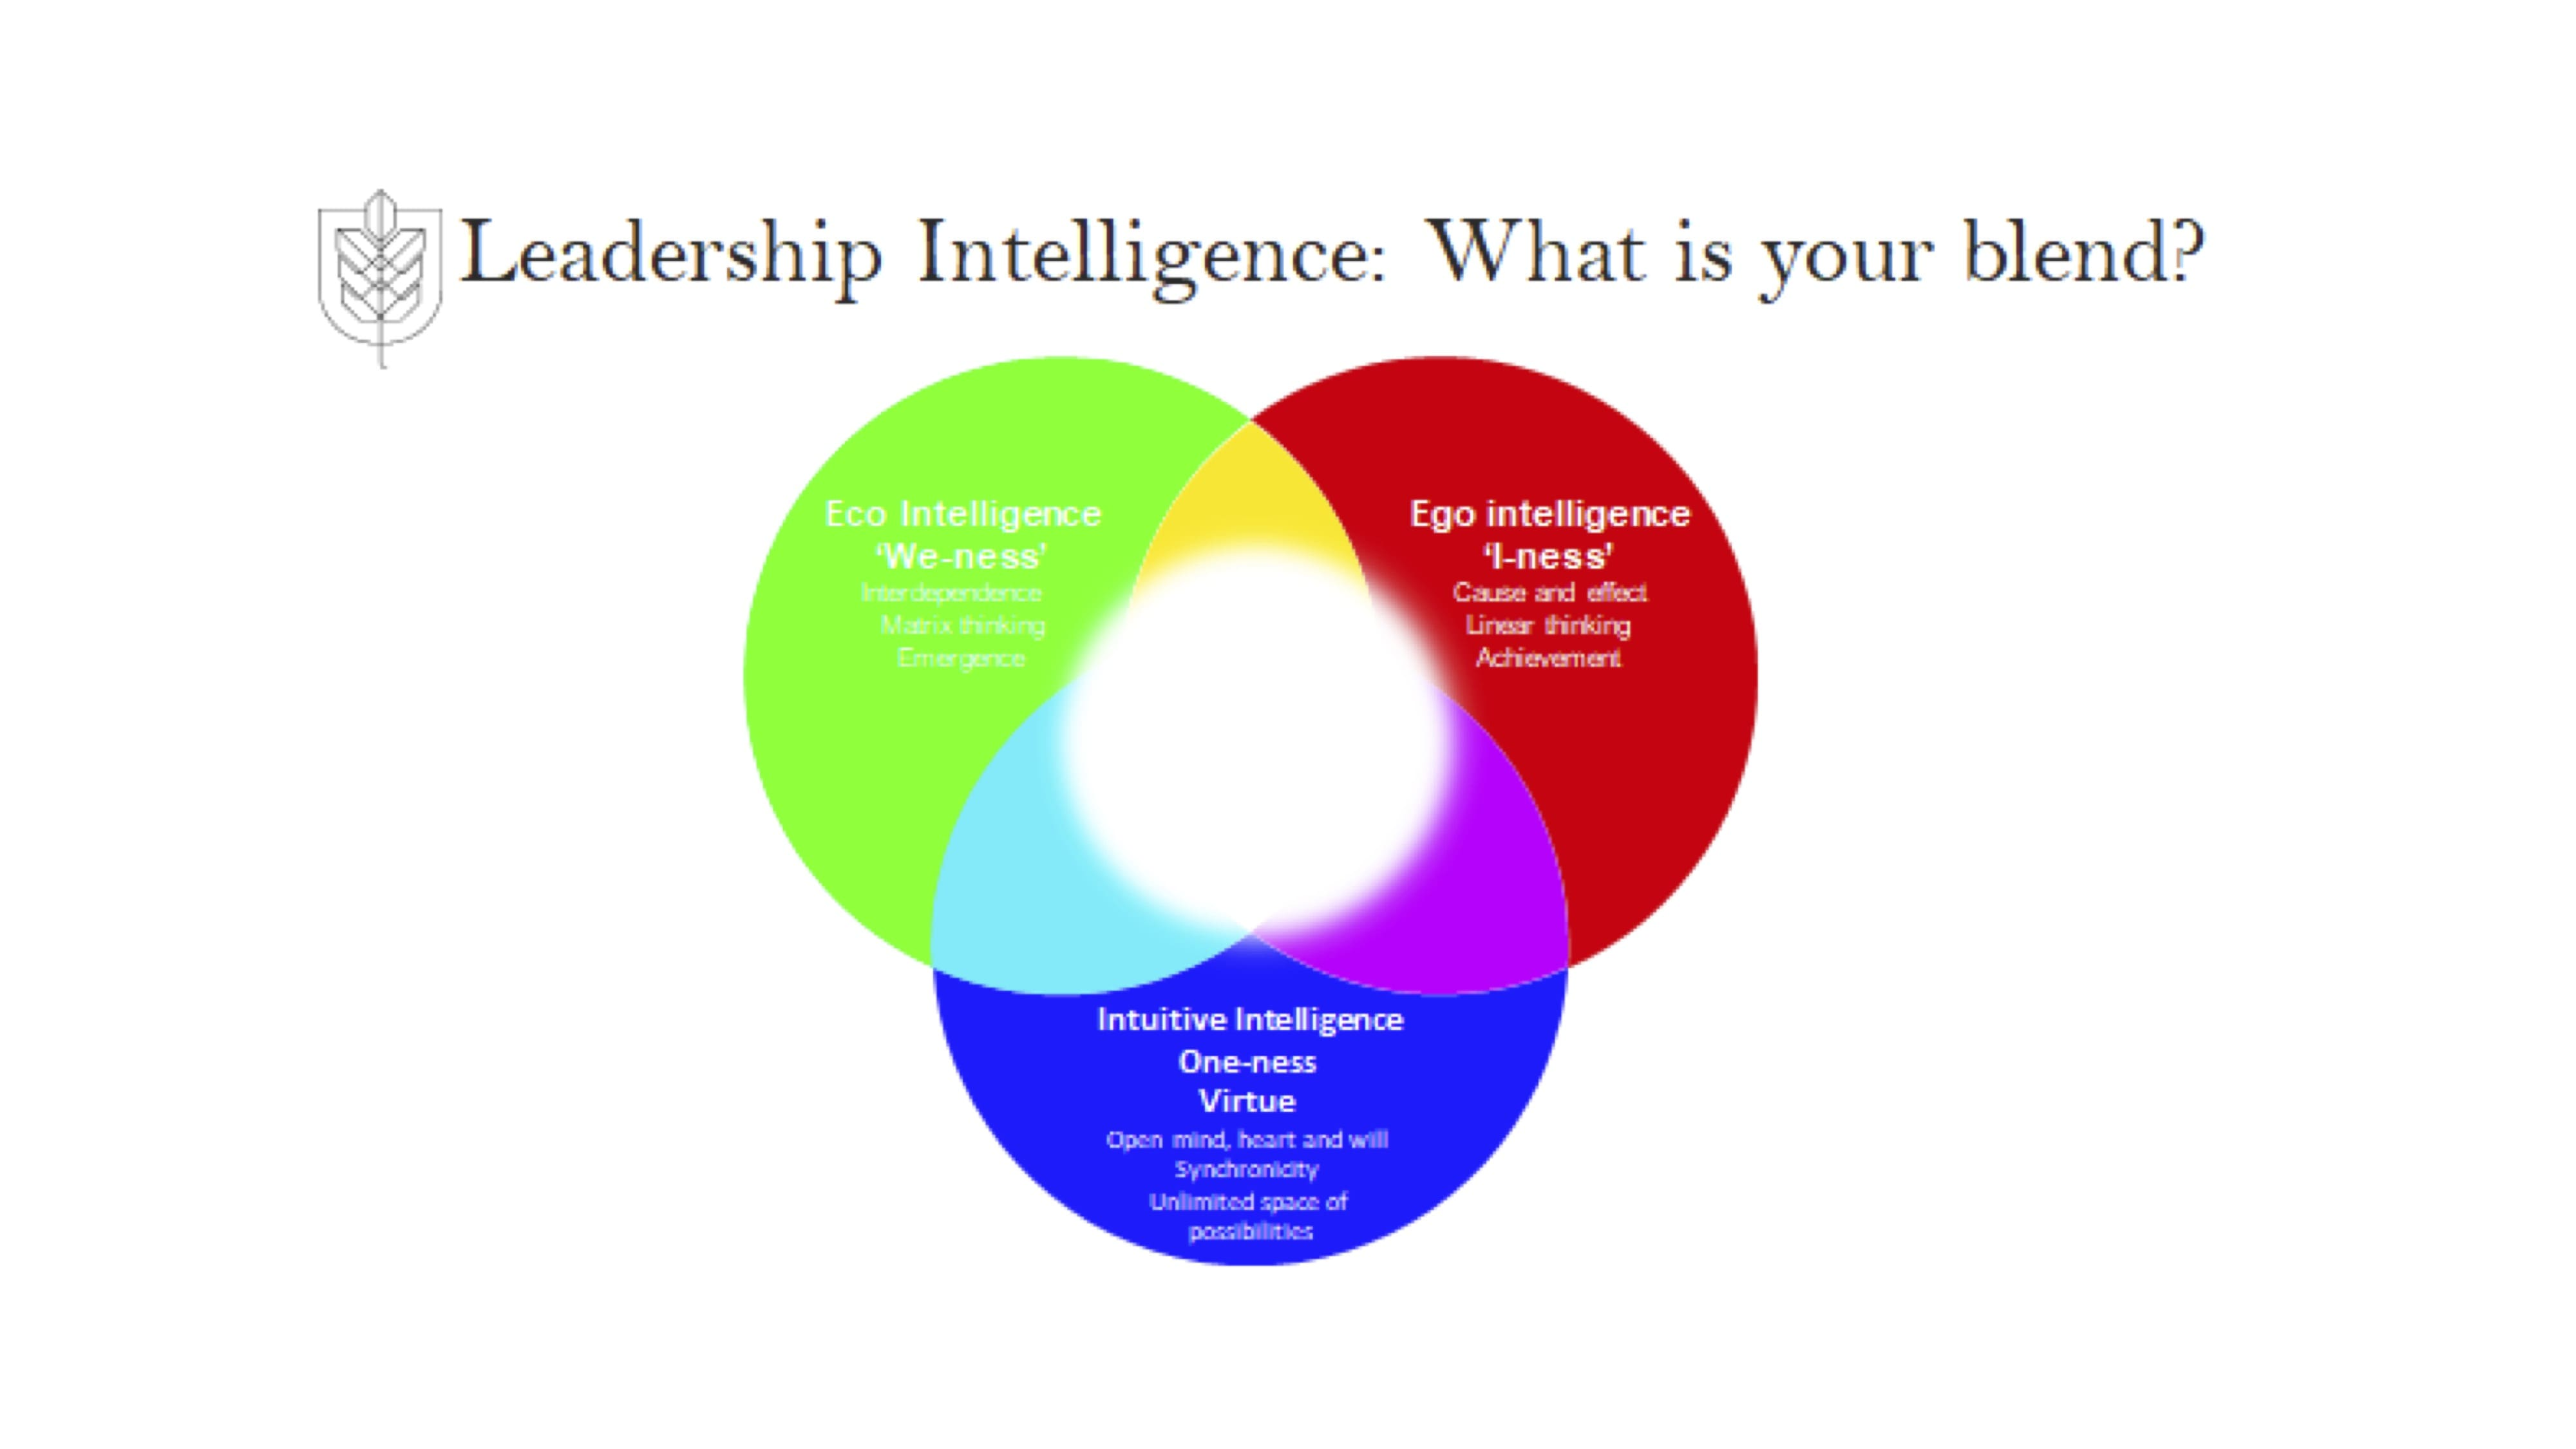 Effective, coherent leadership = Ego capability x Eco capability x Intuitive capability